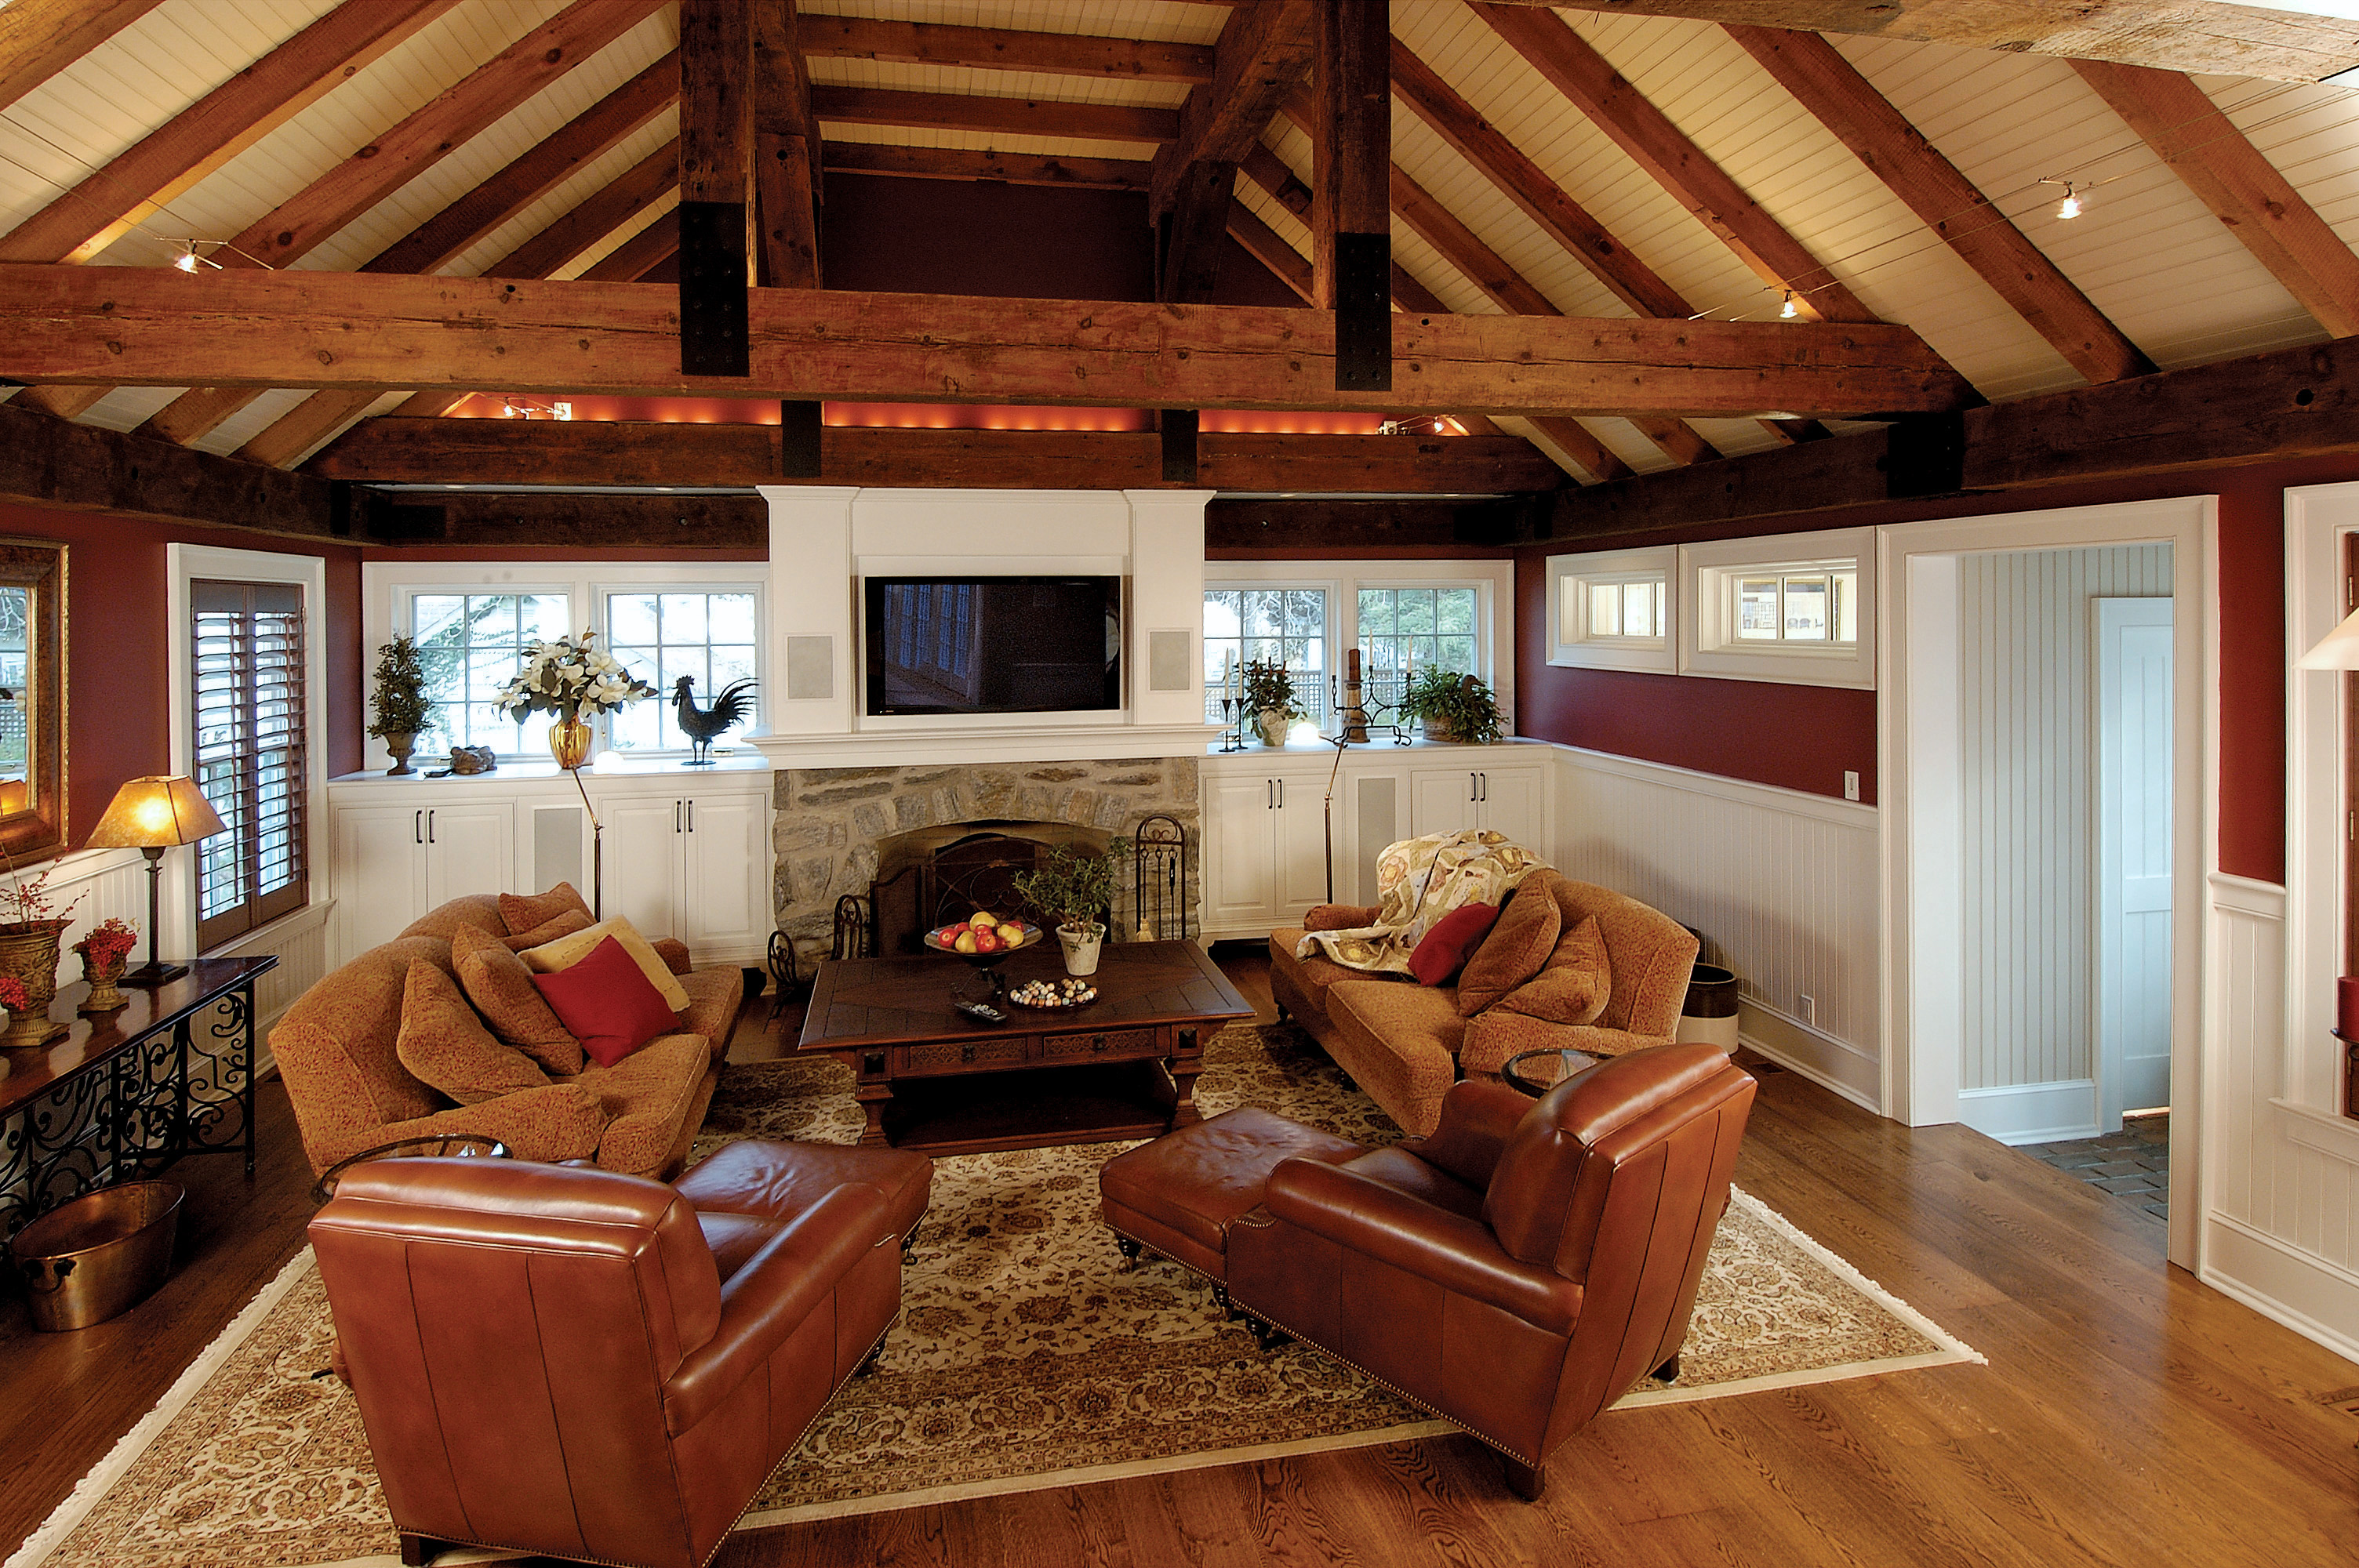 Family Room Addition With Rustic Beams And Vaulted Ceiling